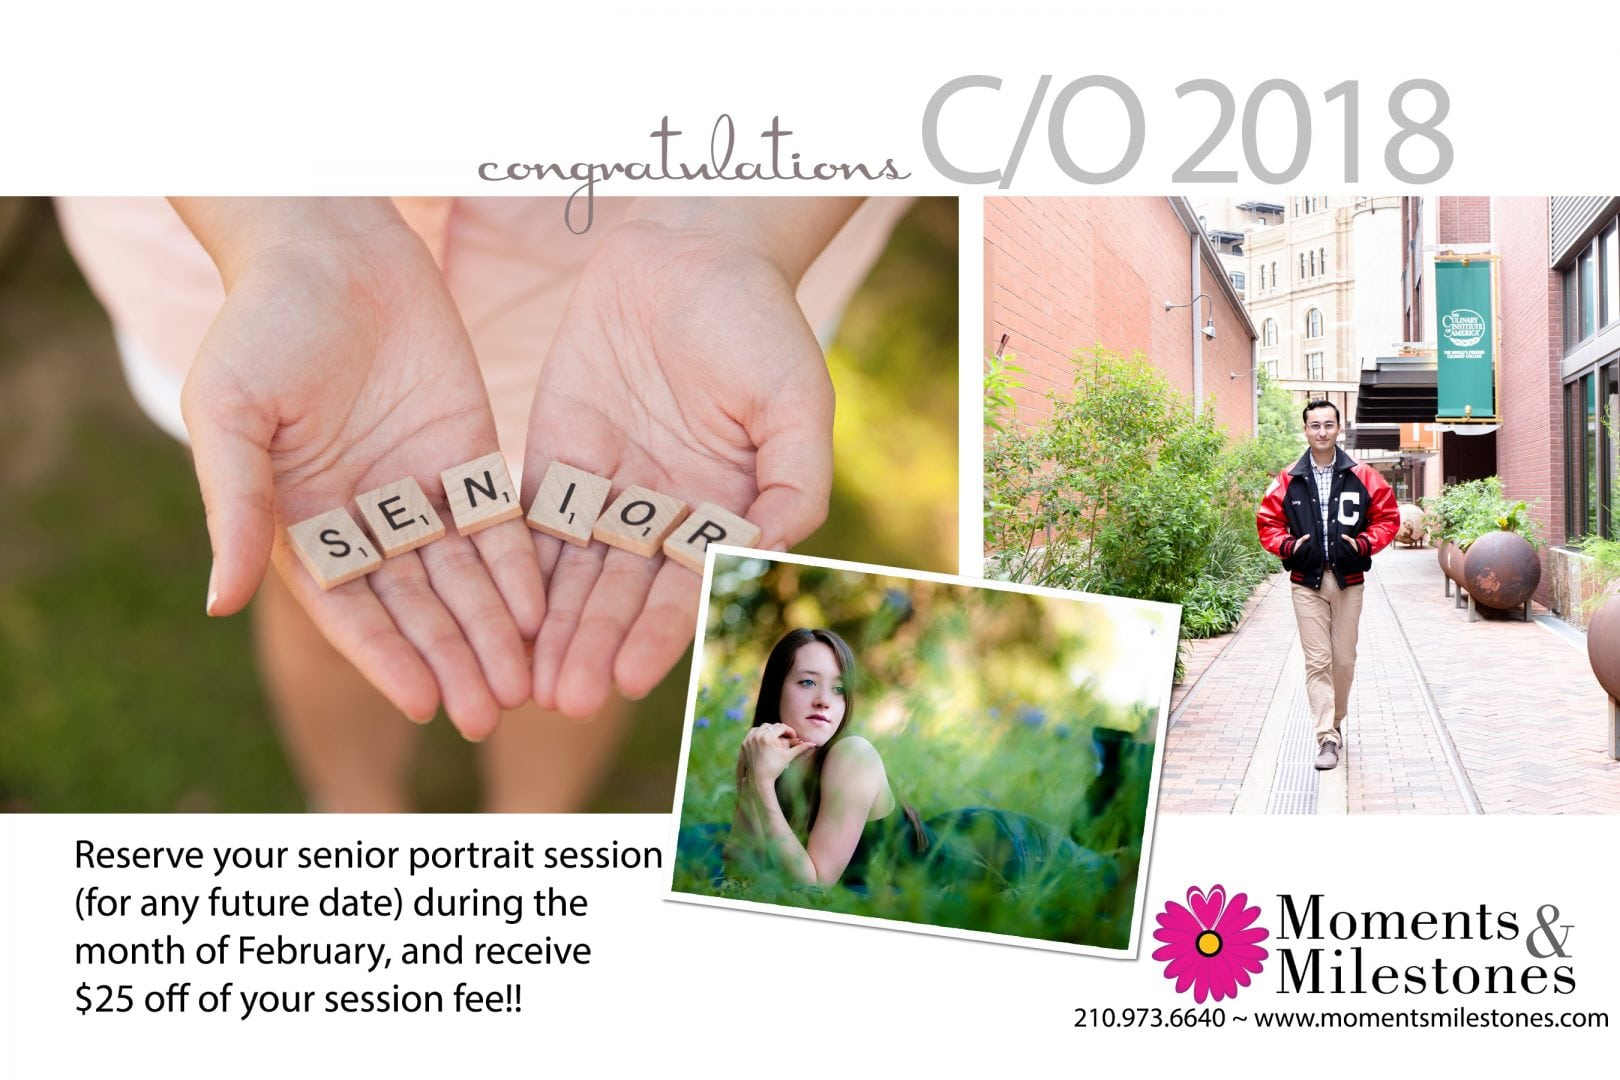 HS Senior Portrait Session Discount!